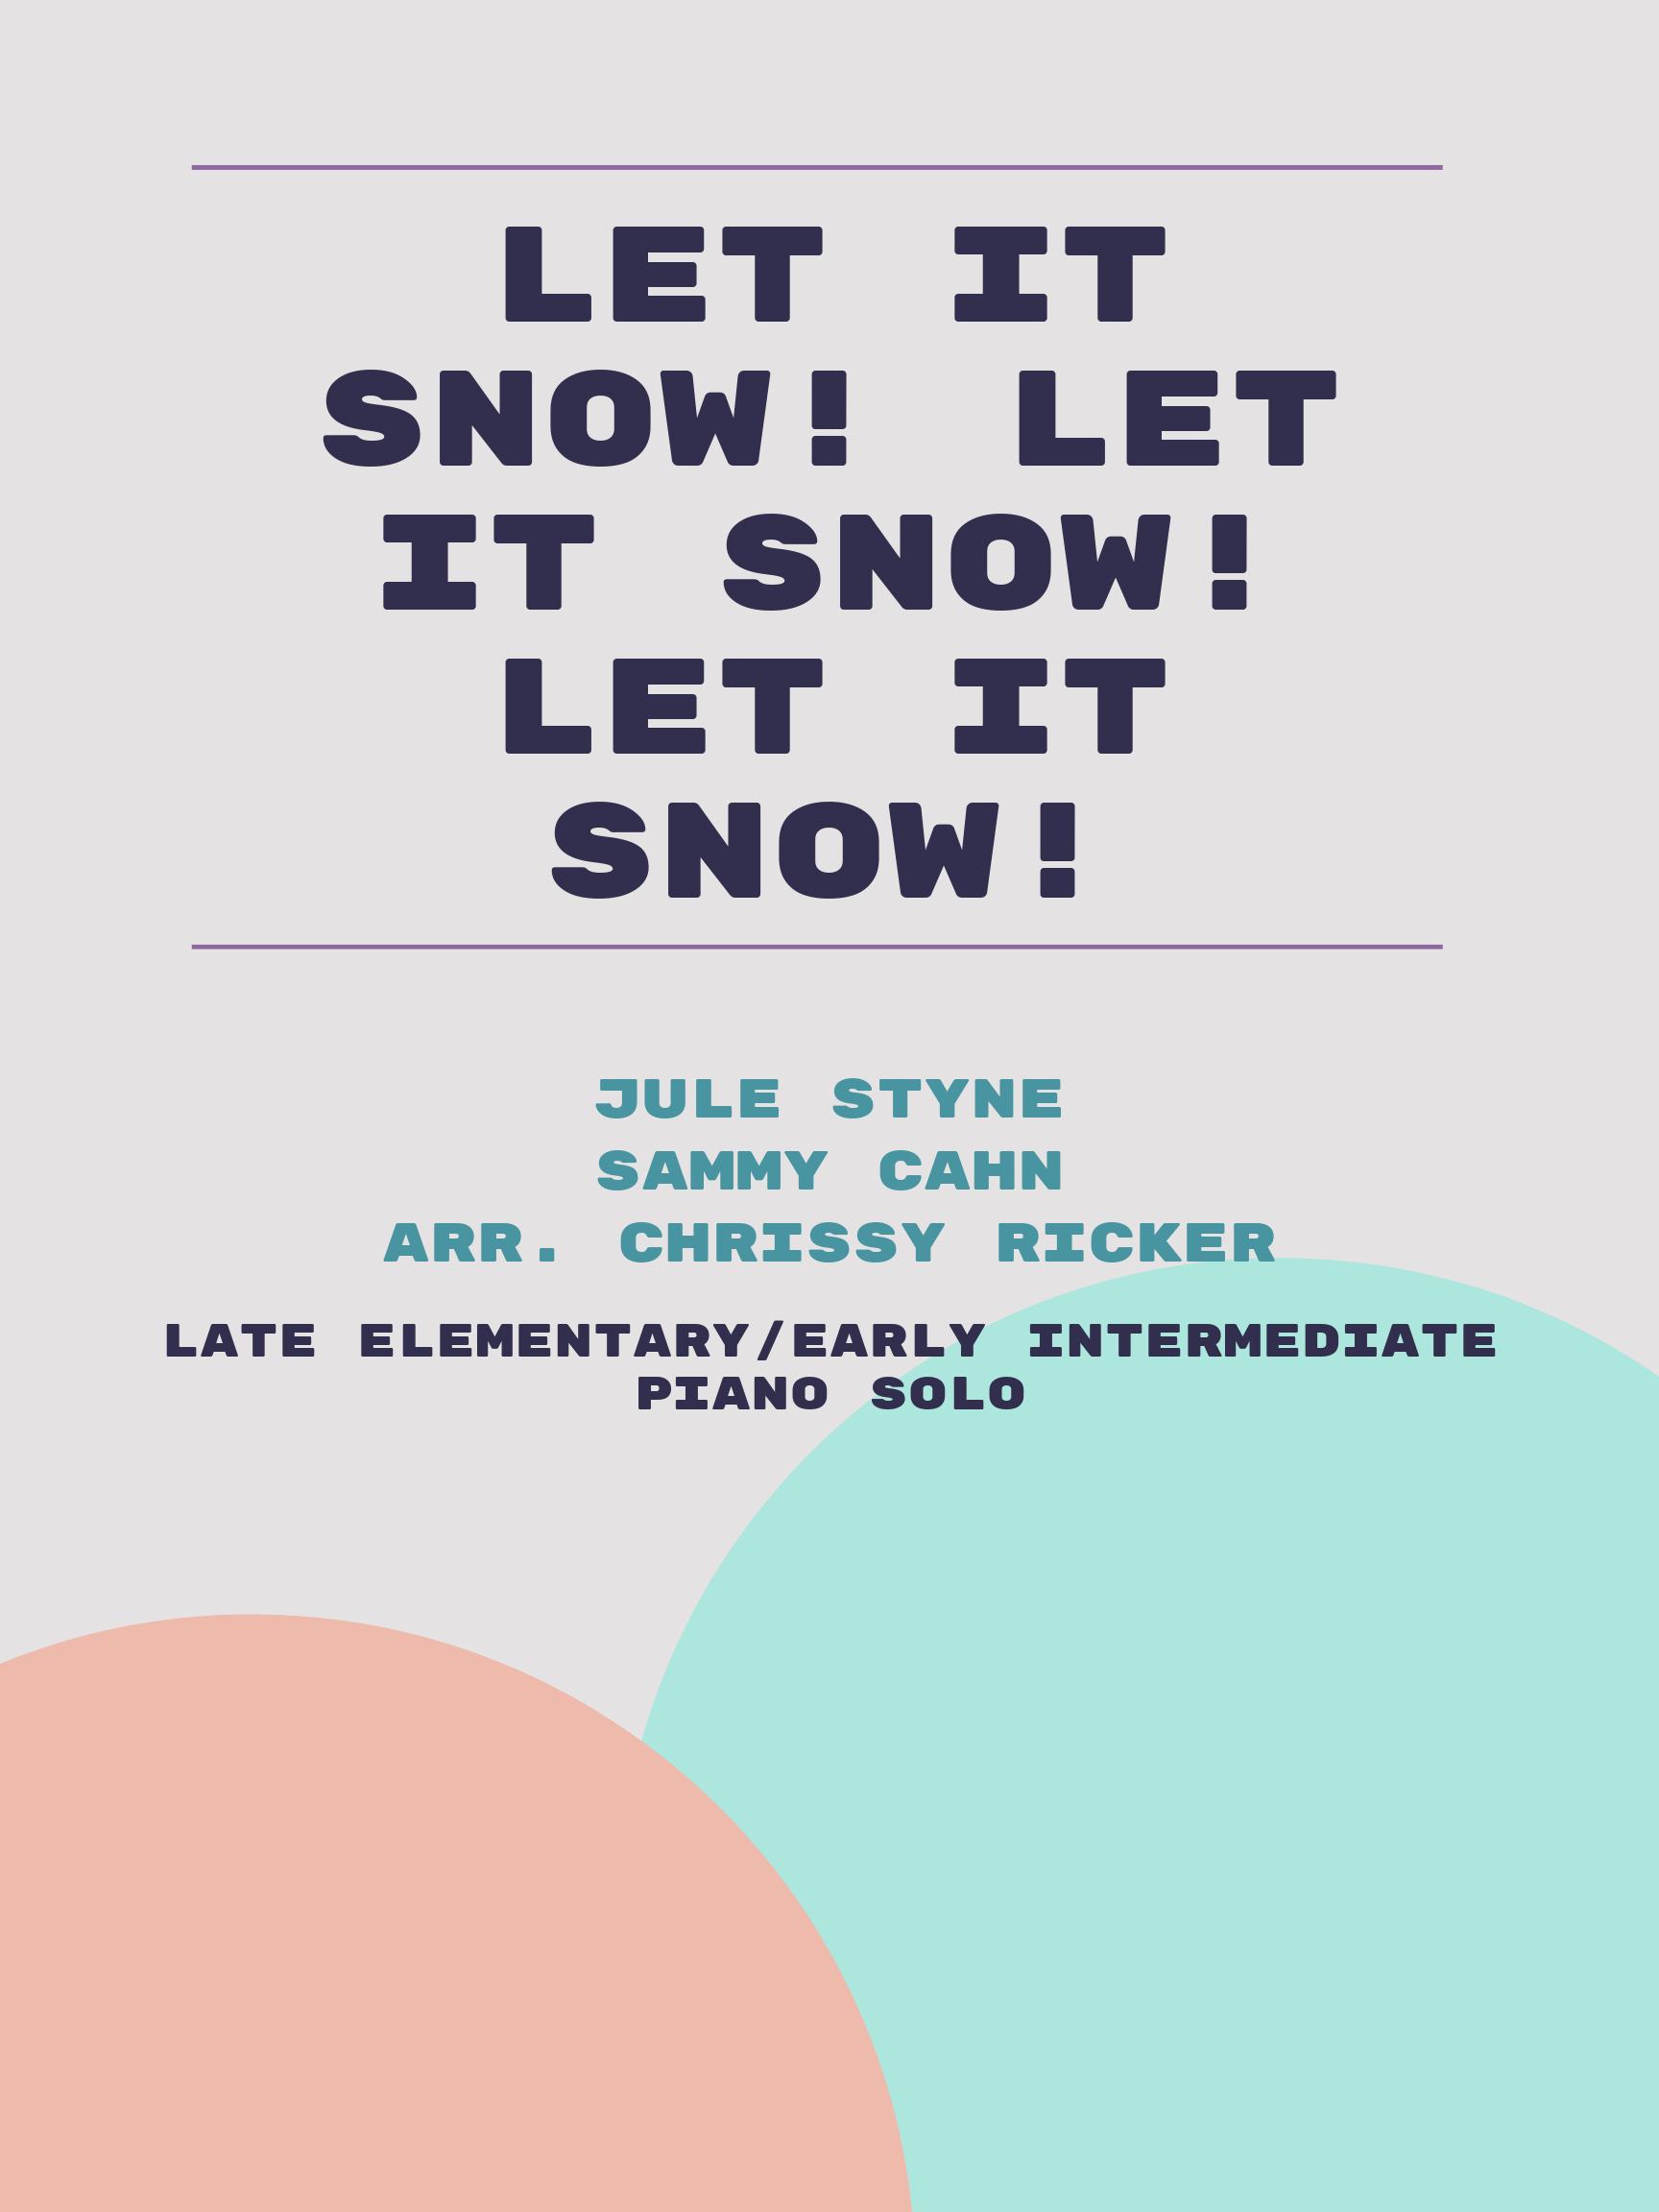 Let It Snow! Let It Snow! Let It Snow! by Jule Styne, Sammy Cahn